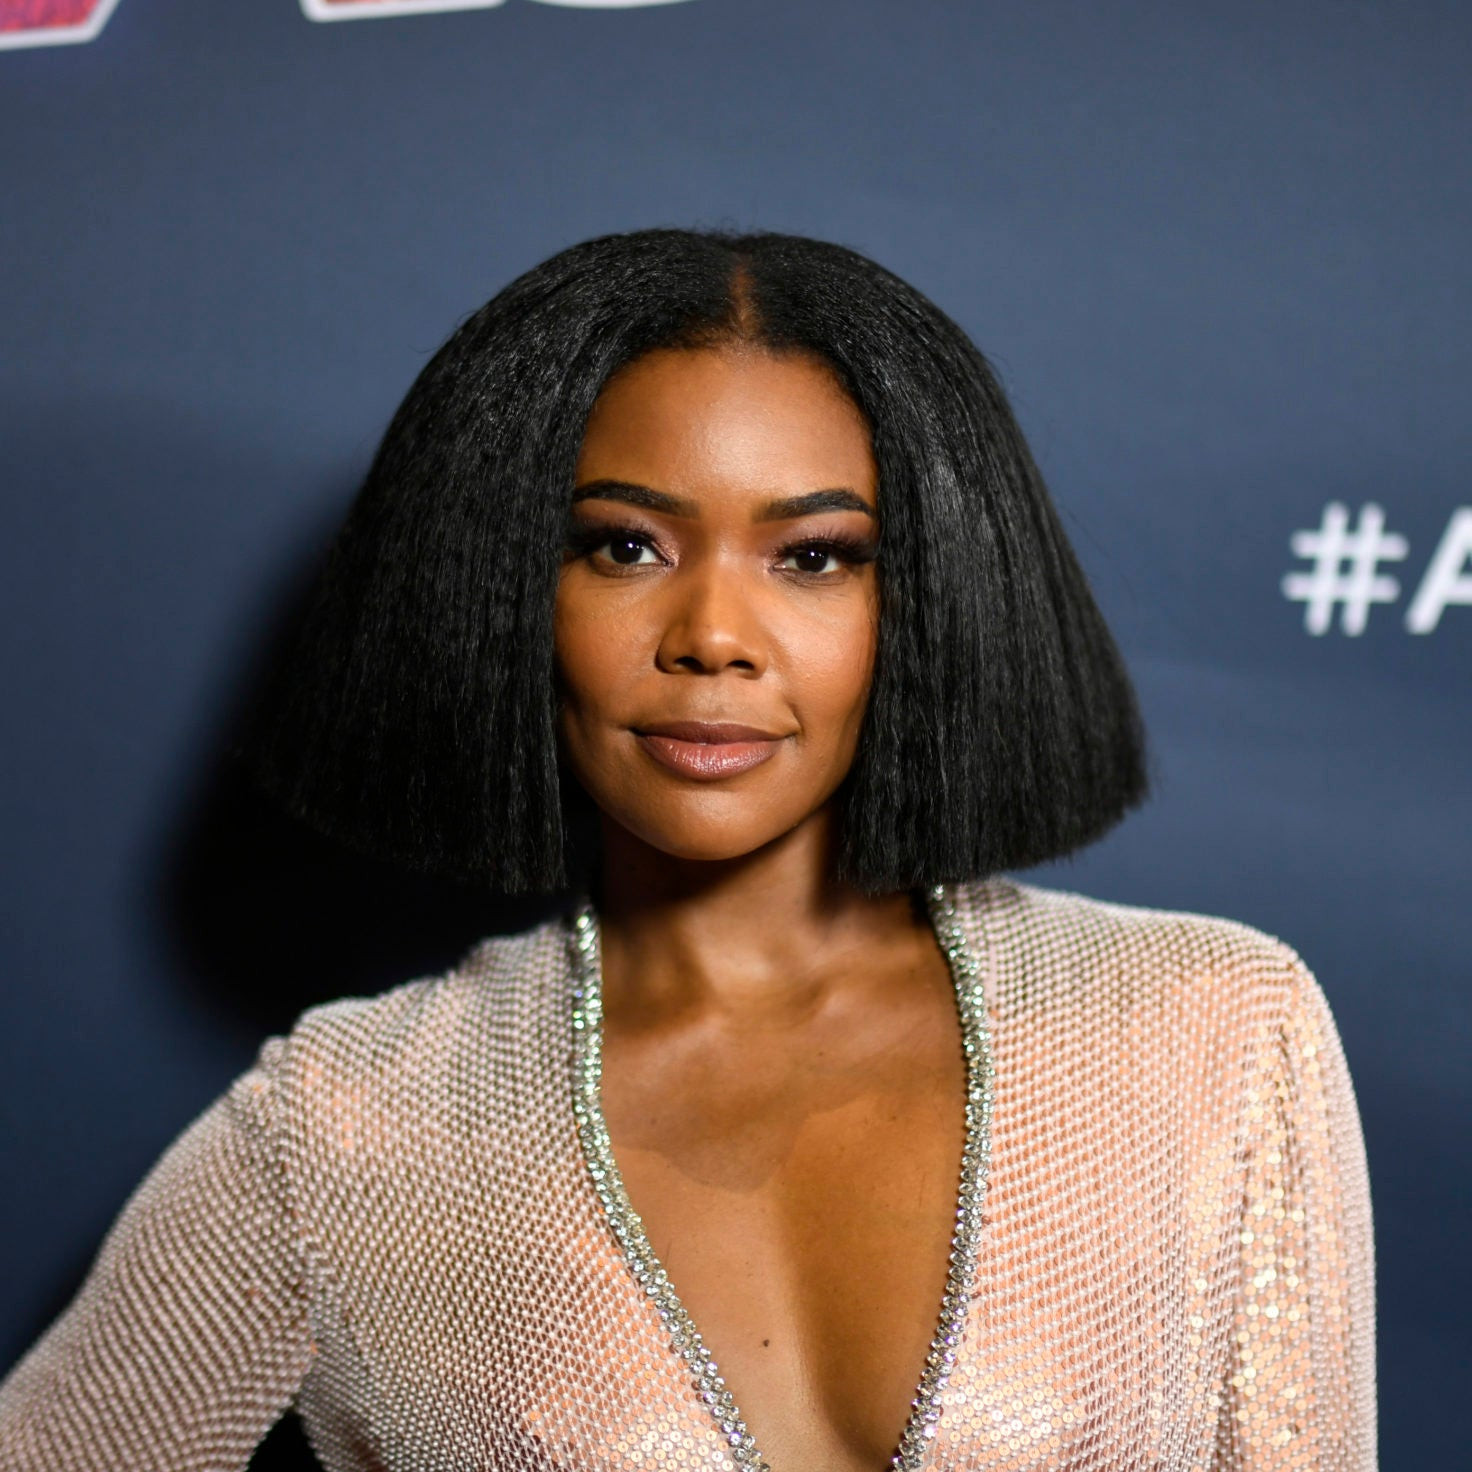 Gabrielle Union Speaks Out After Being Kicked Off 'America's Got Talent': 'So Much Gratitude'